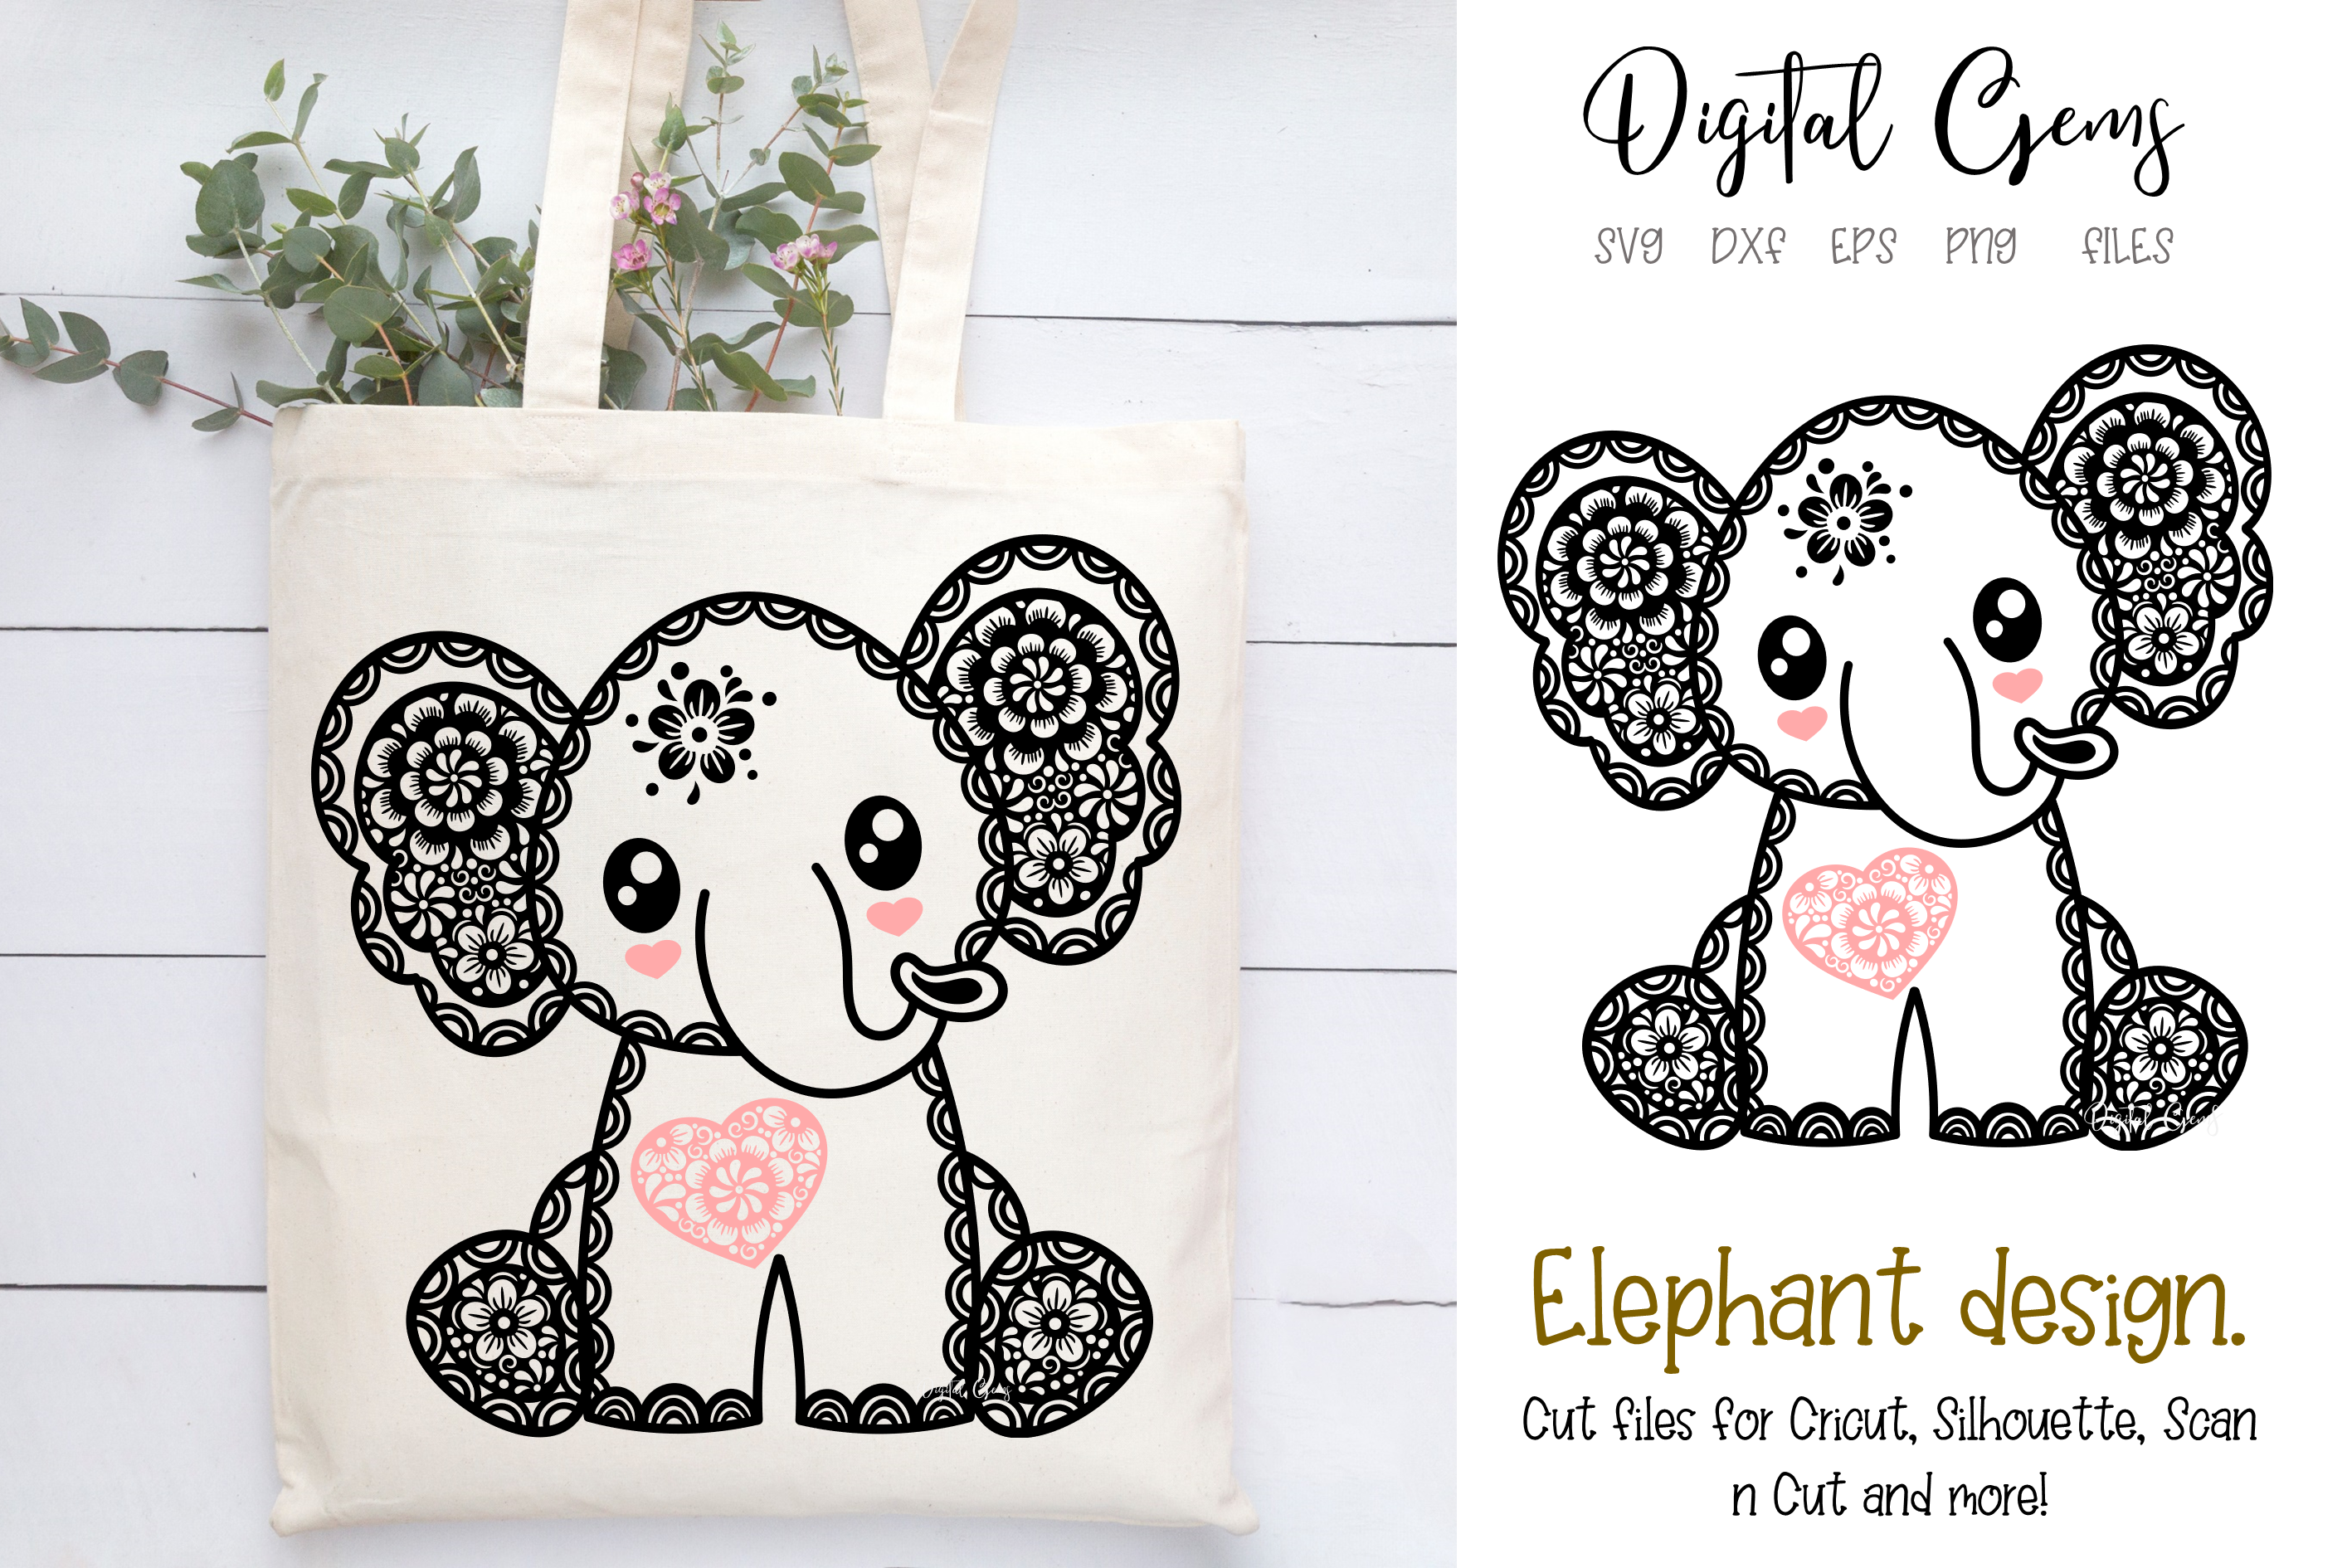 Download Free Elephant Design Graphic By Digital Gems Creative Fabrica for Cricut Explore, Silhouette and other cutting machines.